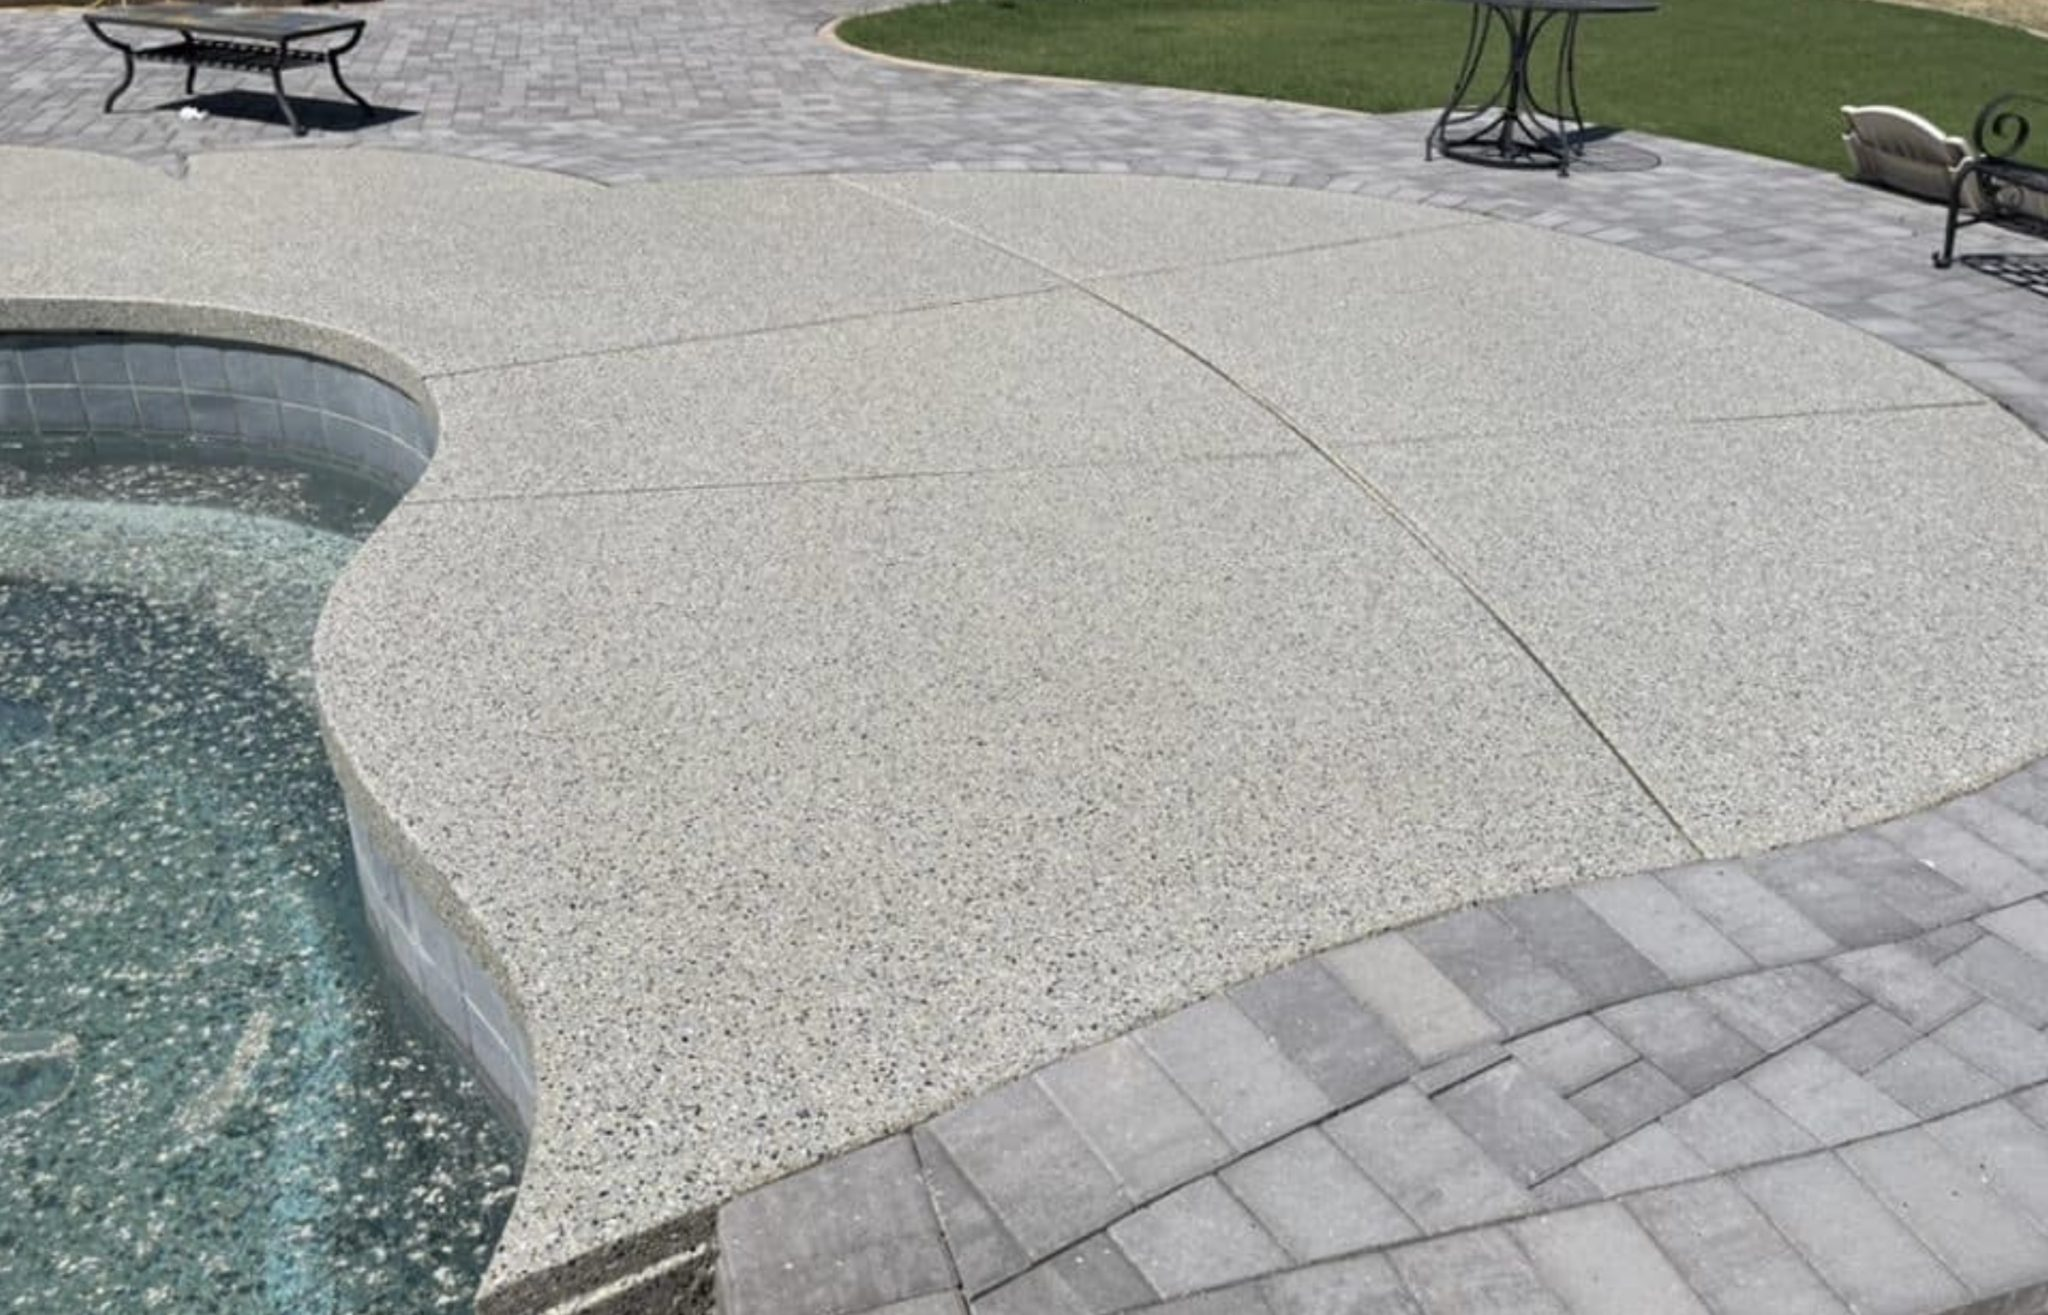 this image shows pool deck in Concord, California